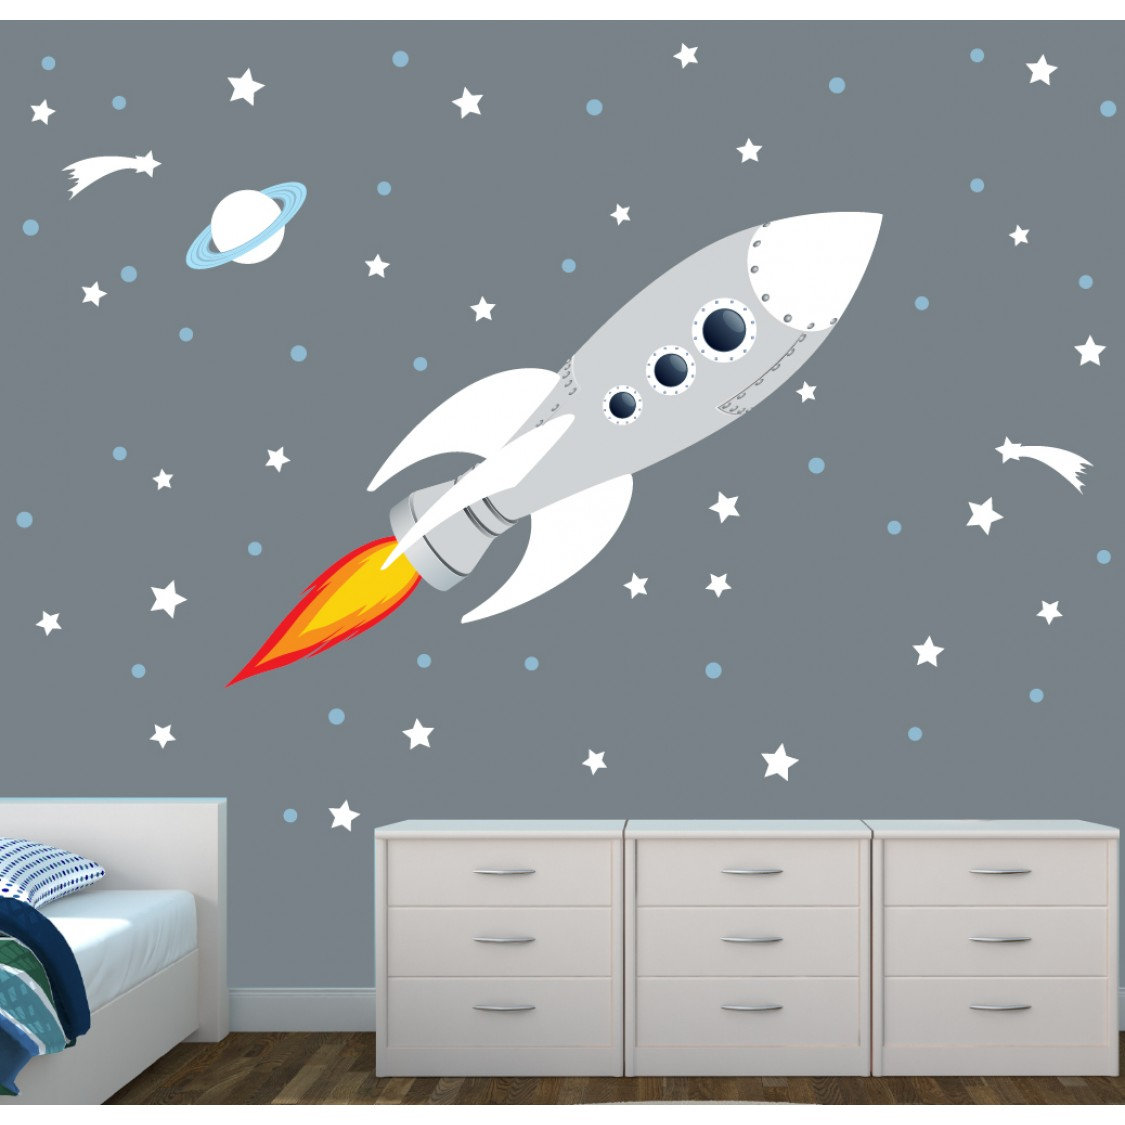 Rocket Wall Decal For Nursery Or Baby Room